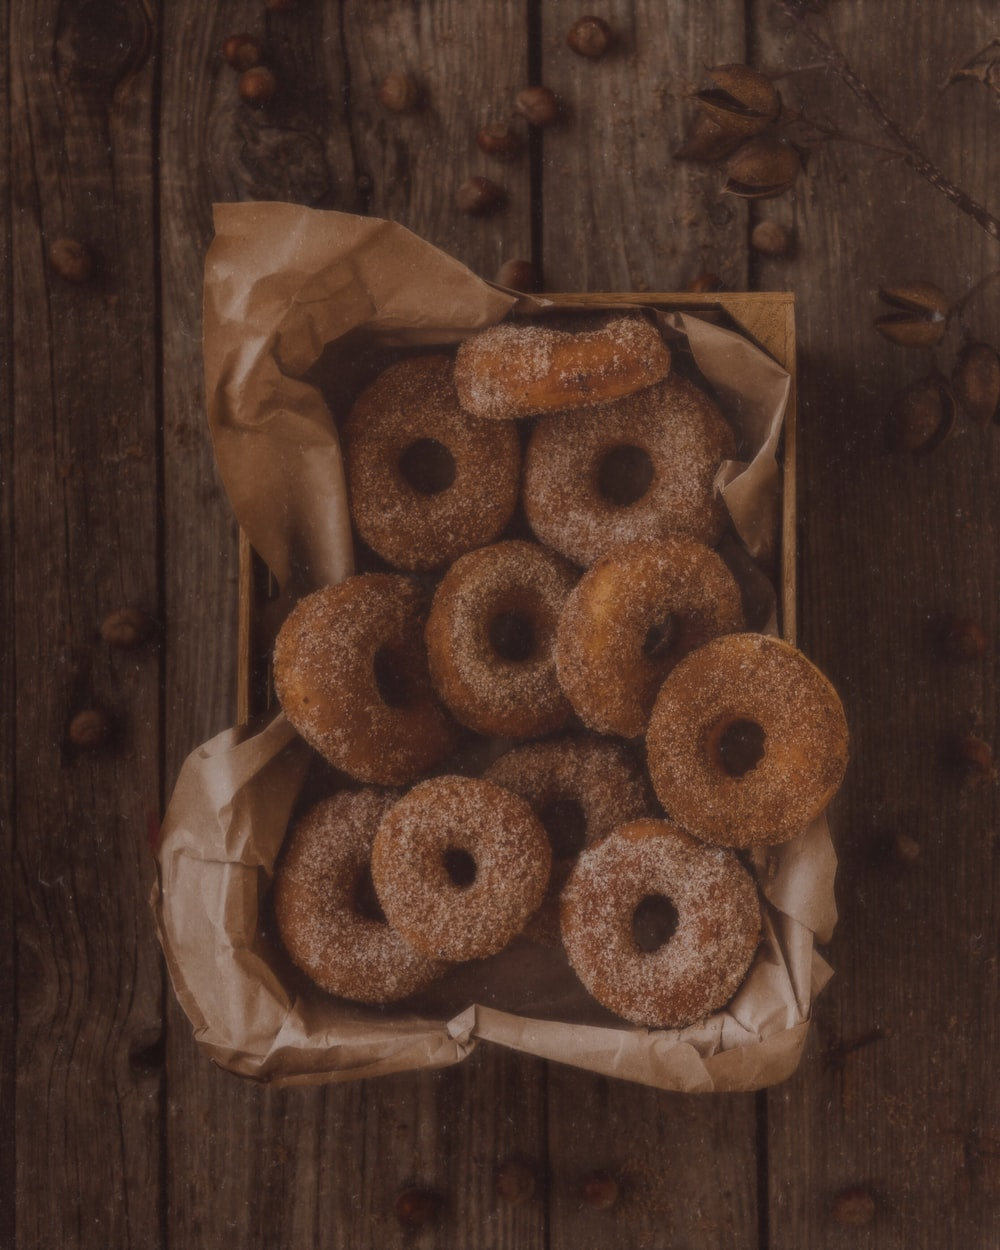 glazed donuts on brown tray